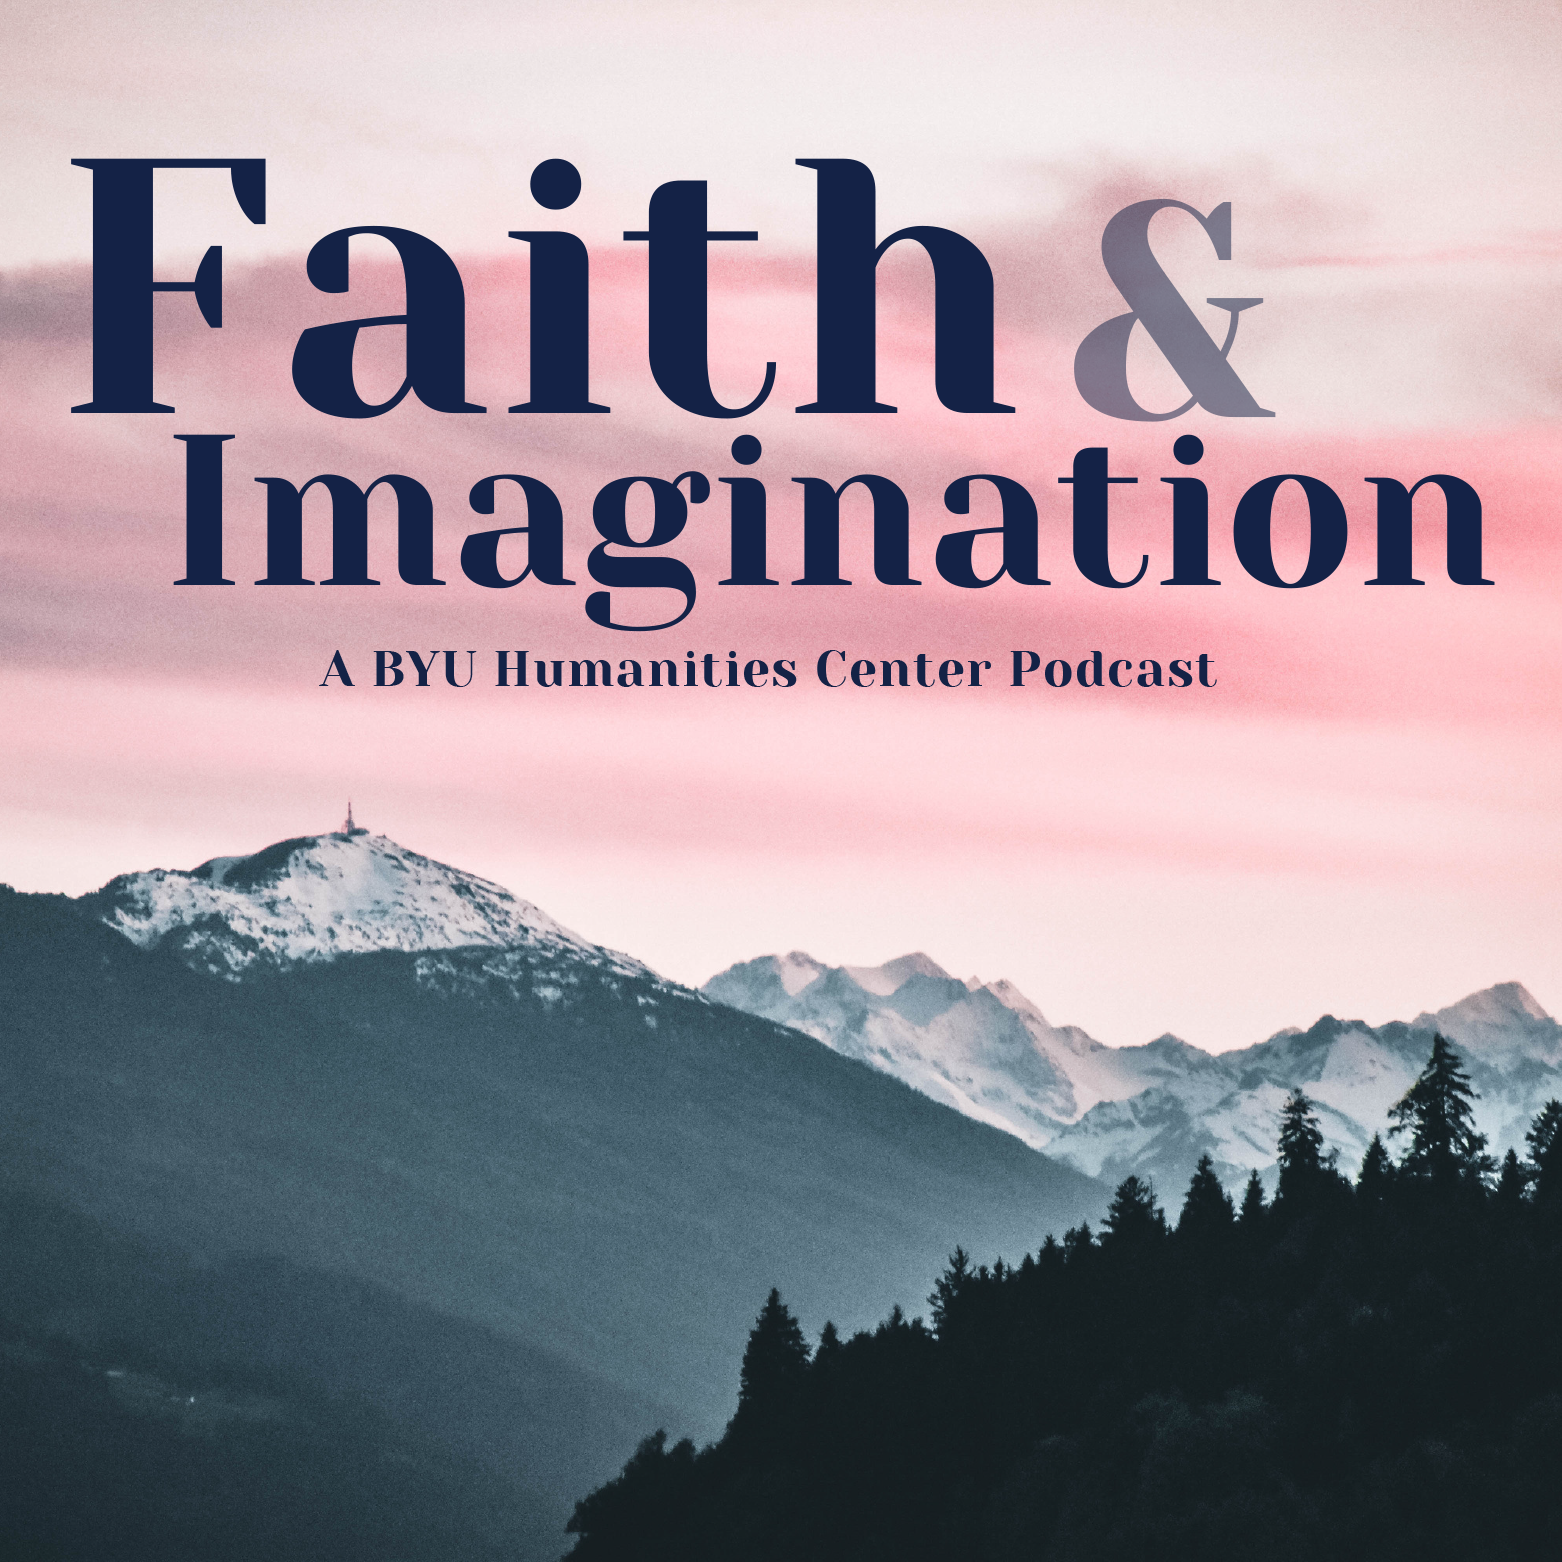 BYU Humanities Center Podcast